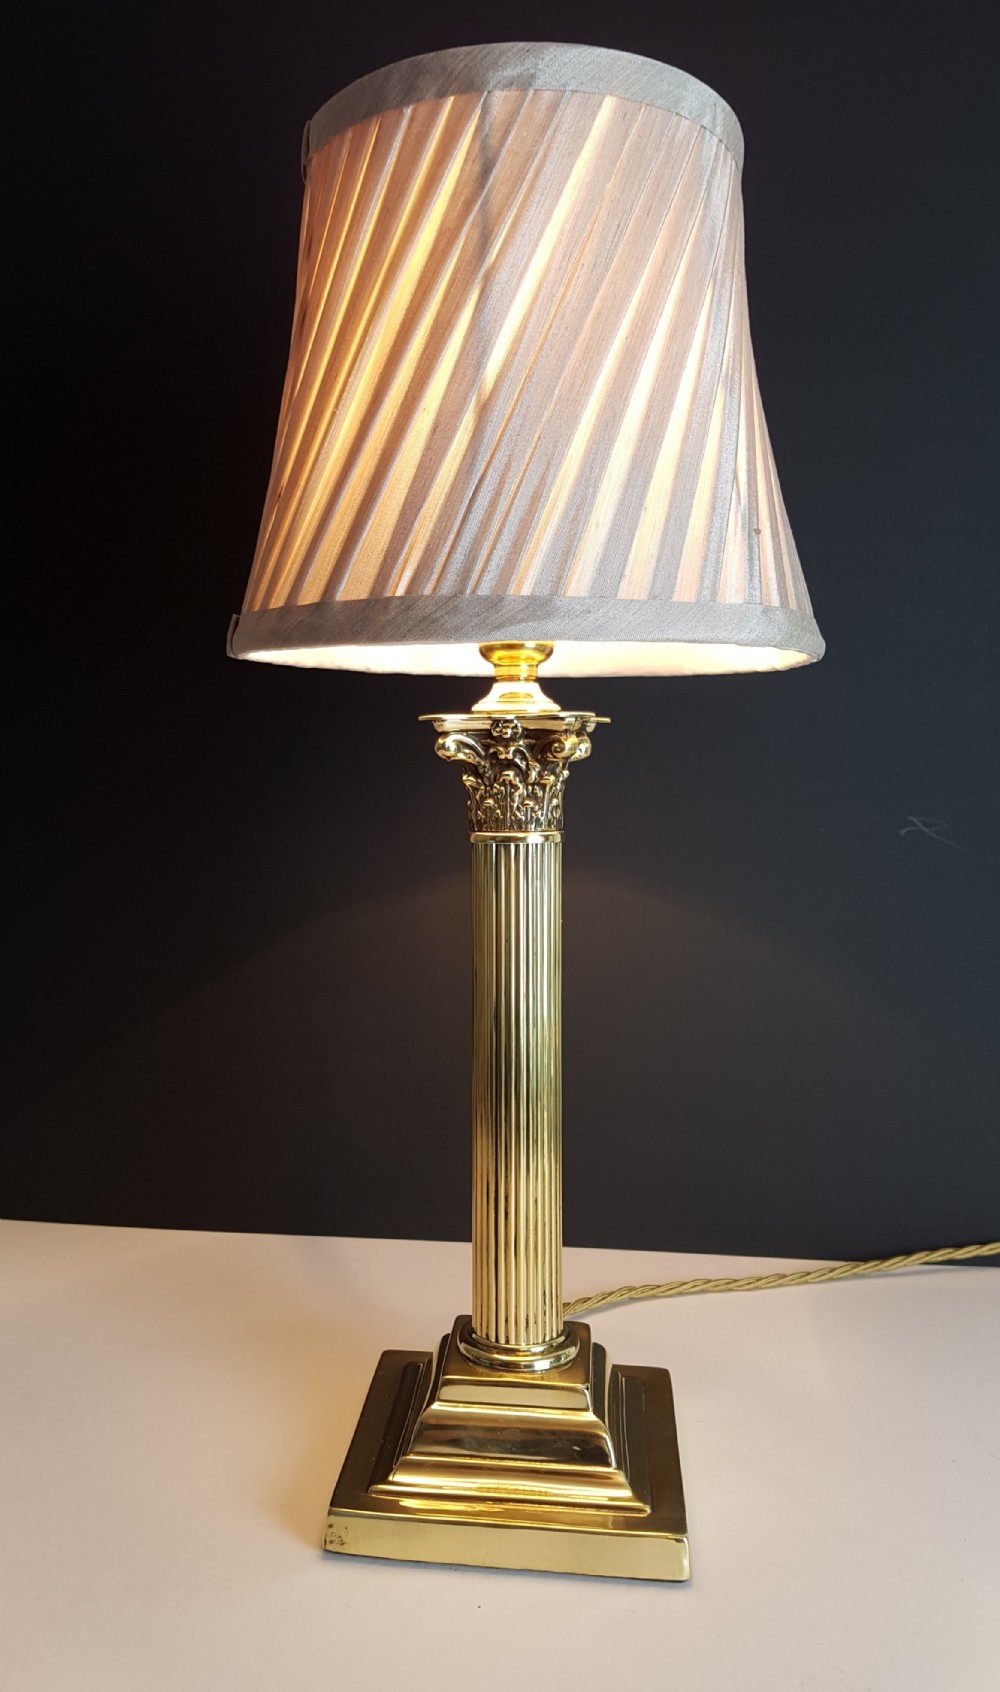 C1920 brass corinthian column table lamp with champagne twist c1920 brass corinthian column table lamp with champagne twist pleat shade rewired greentooth Gallery